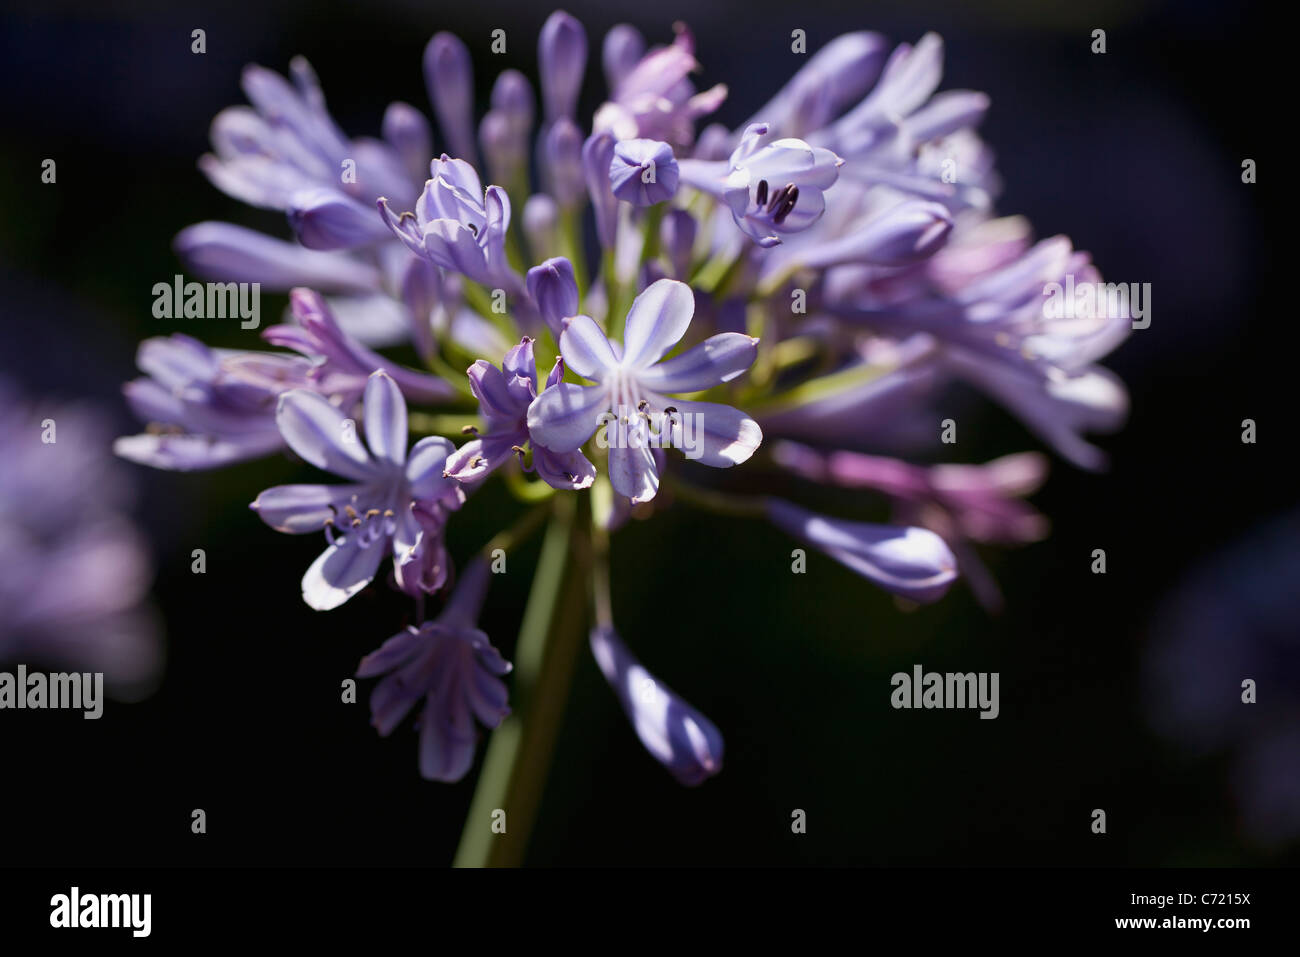 African lily (agapanthe), close-up - Stock Image